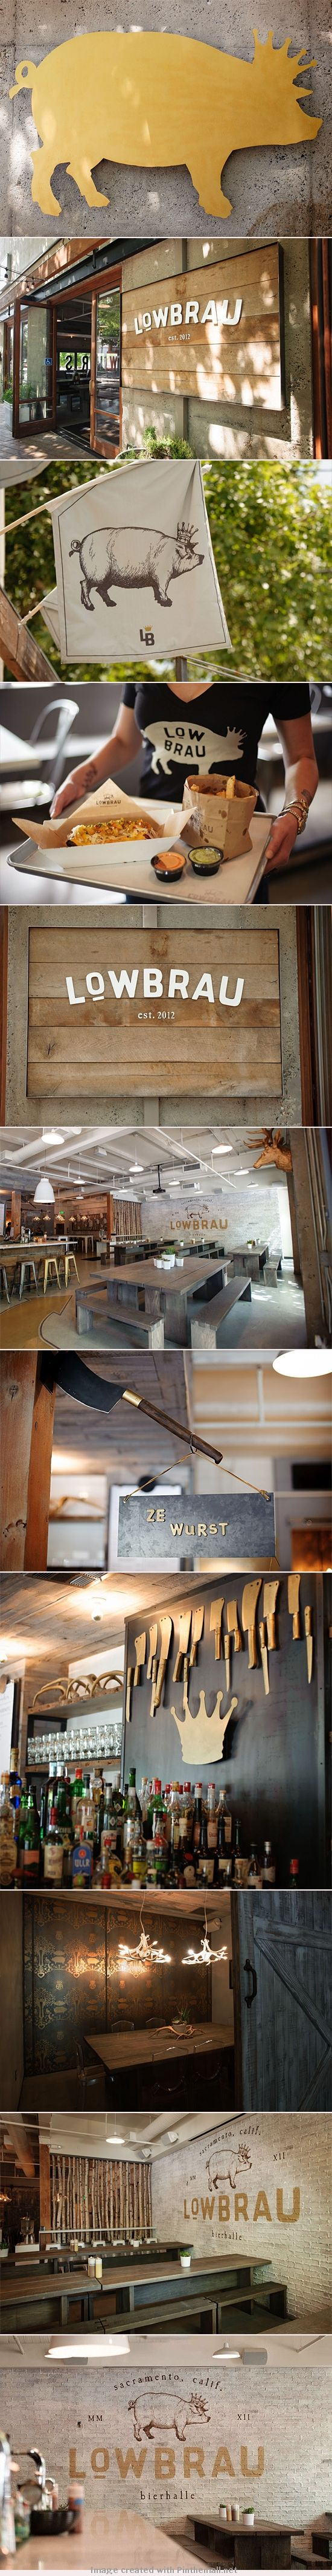 Lowbrau. Not a lowbrow restaurant. #interior #design (More design inspiration at www.aldenchong.com)